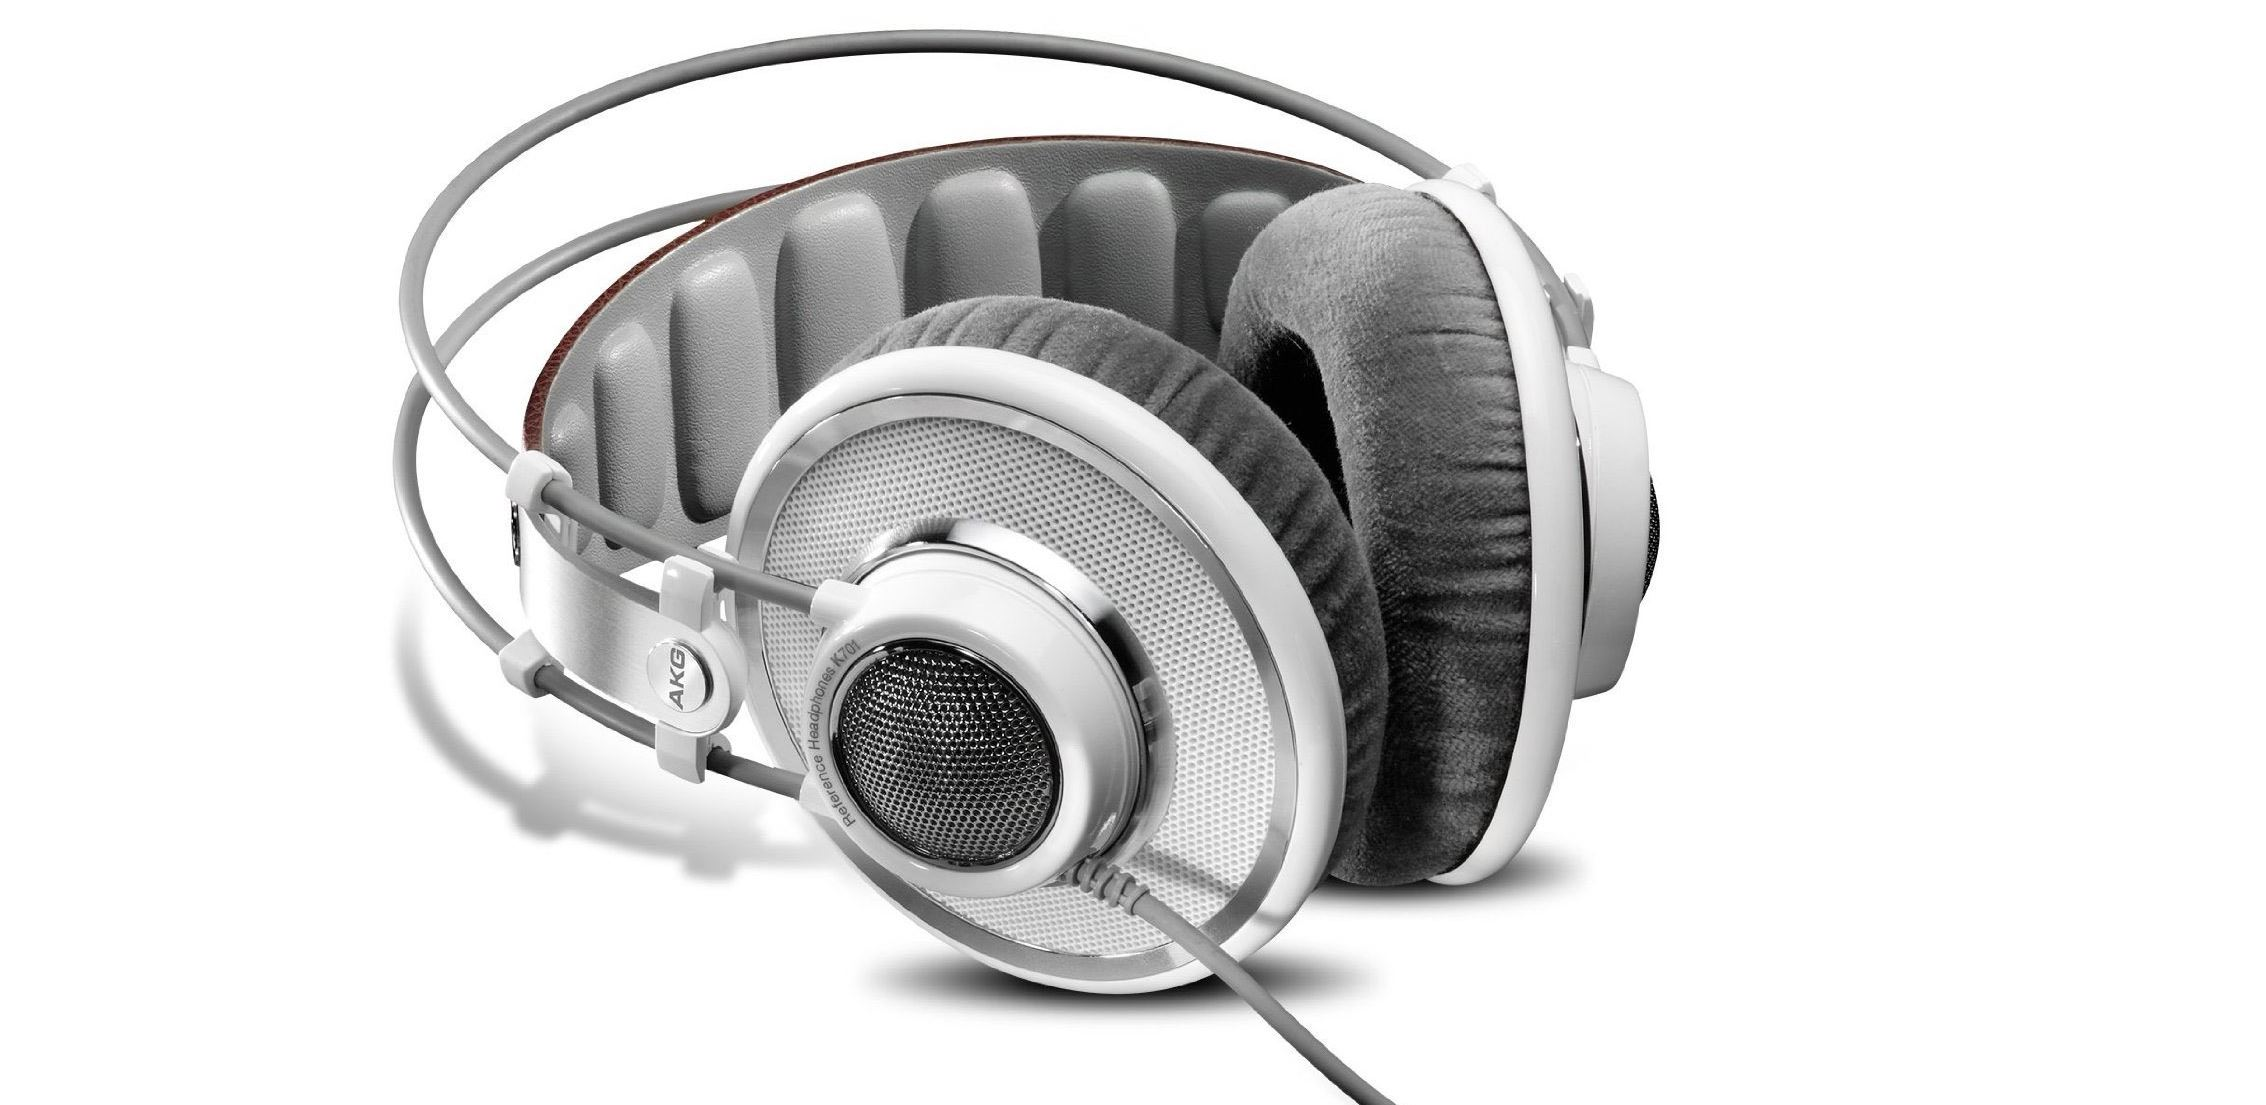 Choosing The Right Headphones for Music on Your PC